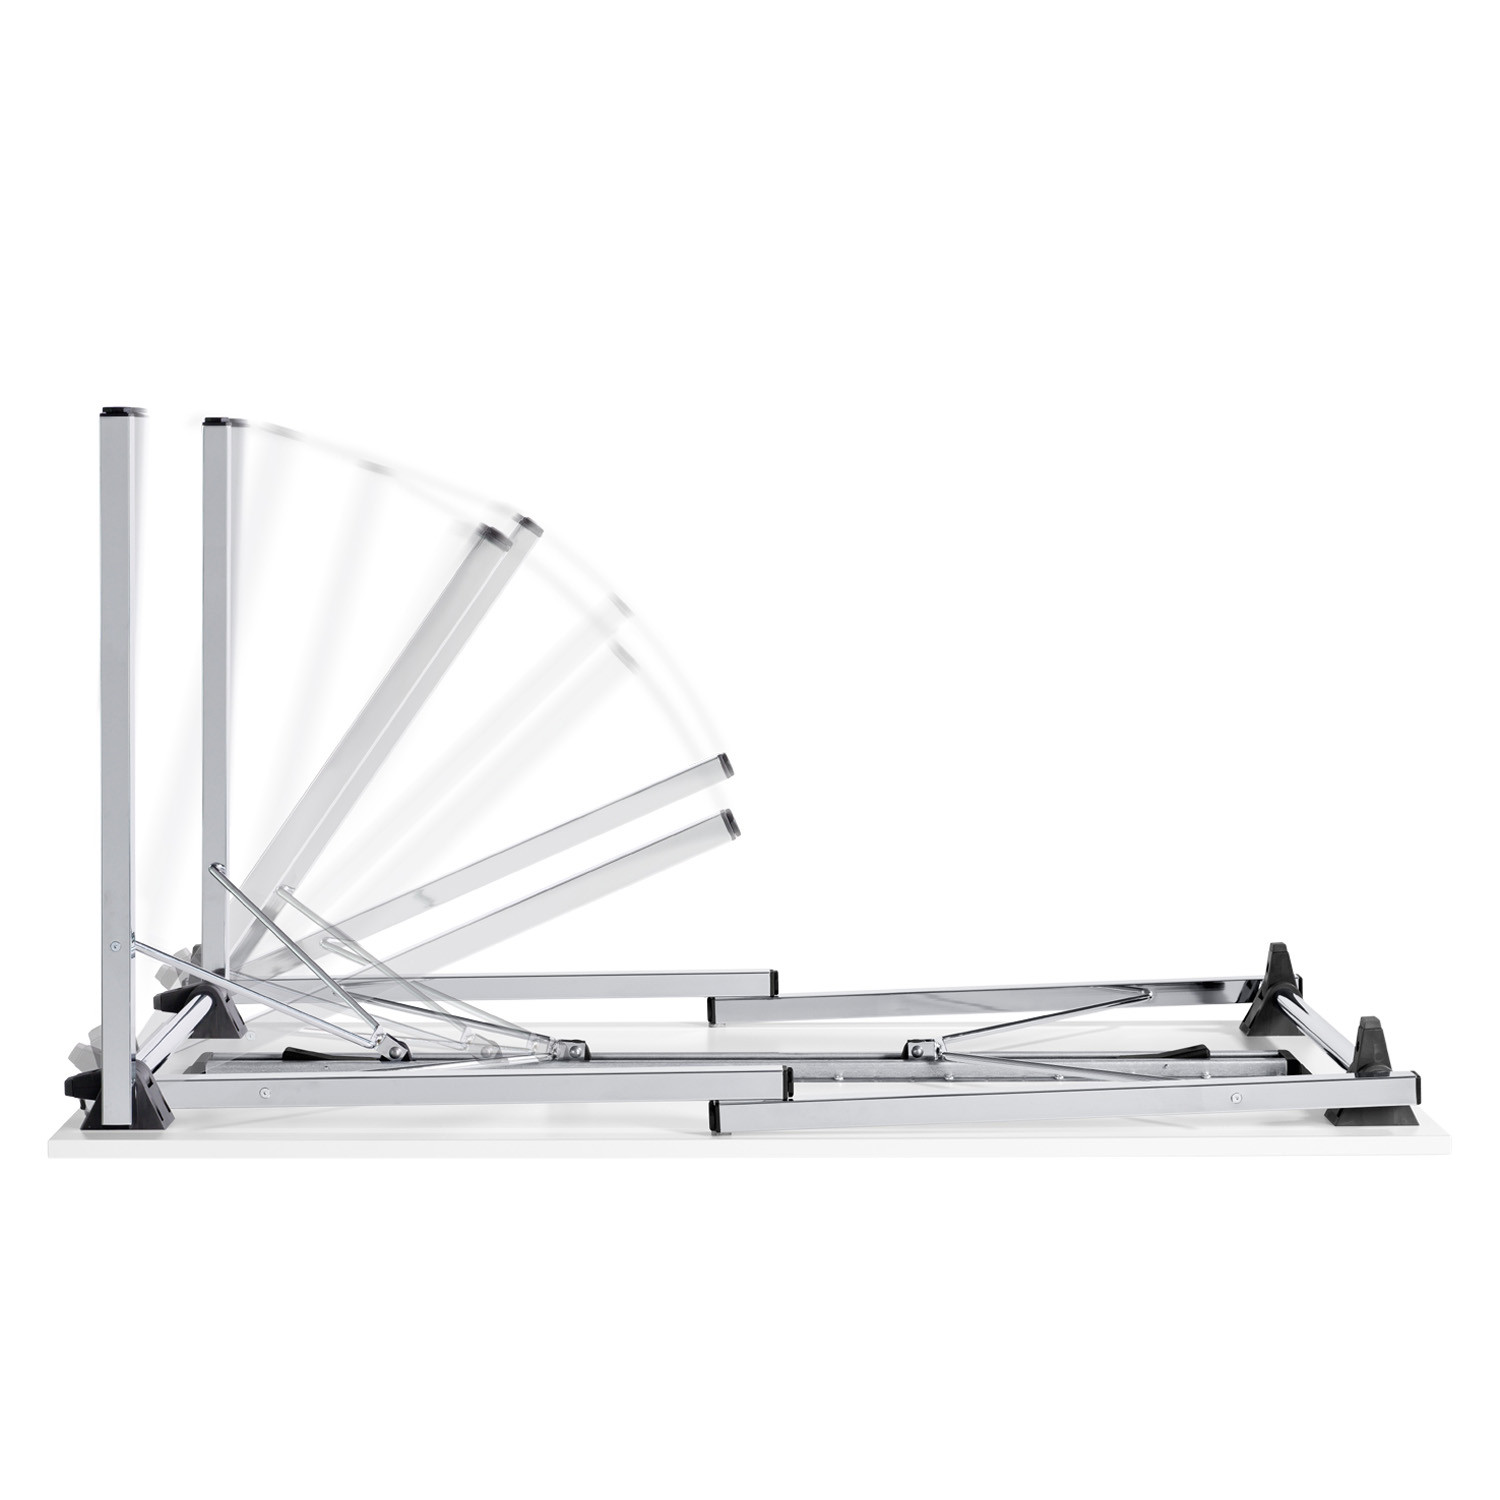 F.T.S Folding Table Mechanism